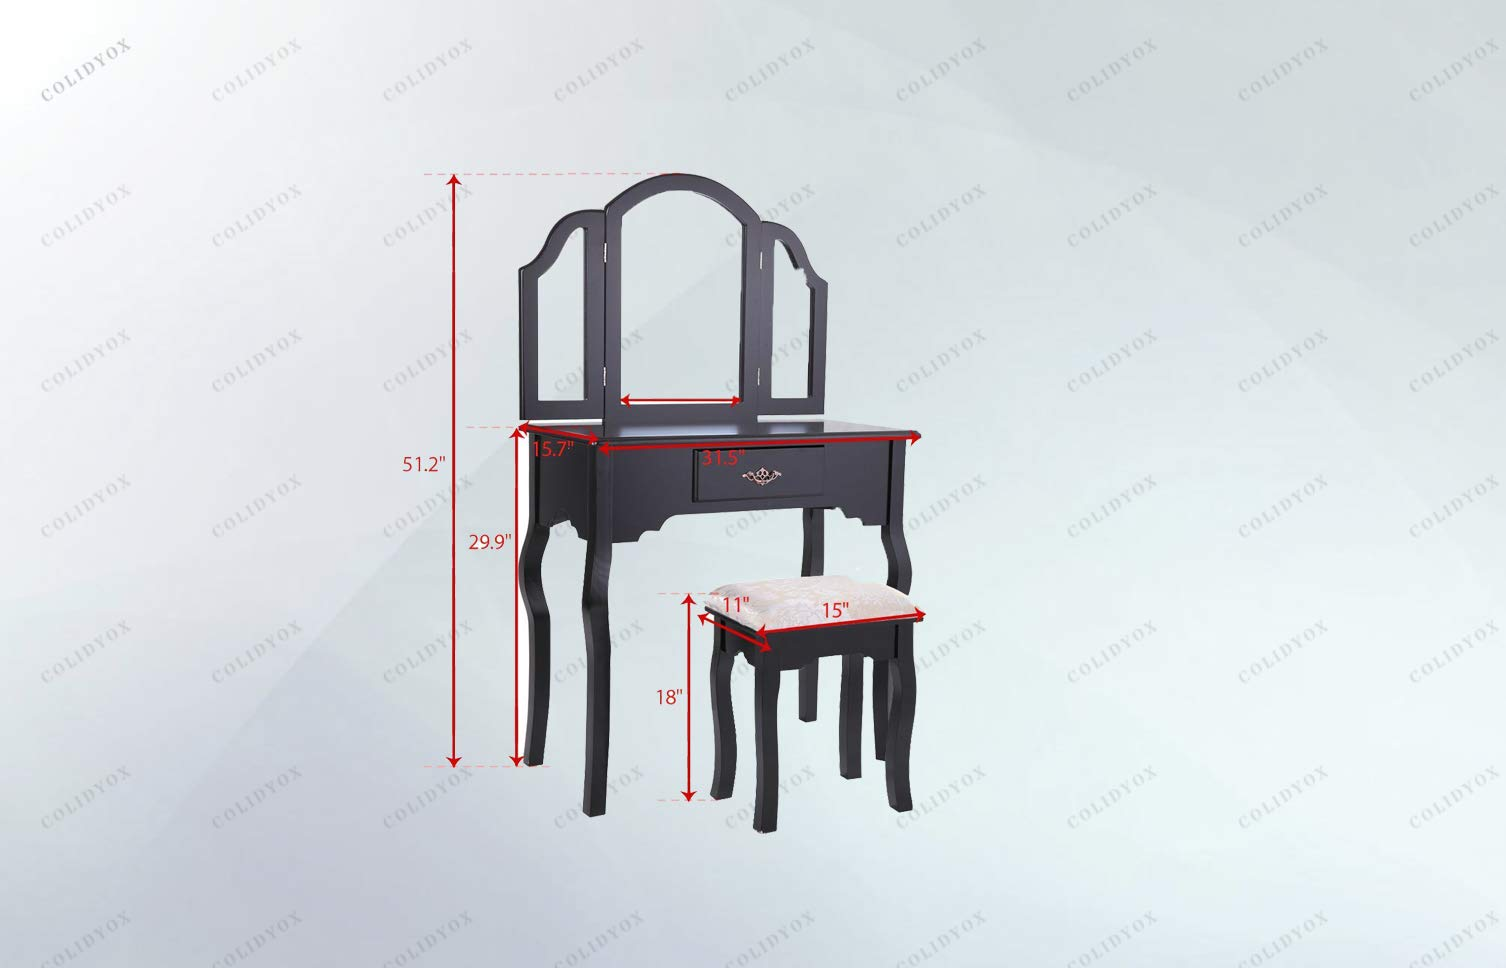 COLIBROX>>>Black Vanity Makeup Table to get Ready Before Going to Work or Hanging Out with Your Friends or Beloved one, a Vanity Makeup Dressing Table Would be Your Best Choice.